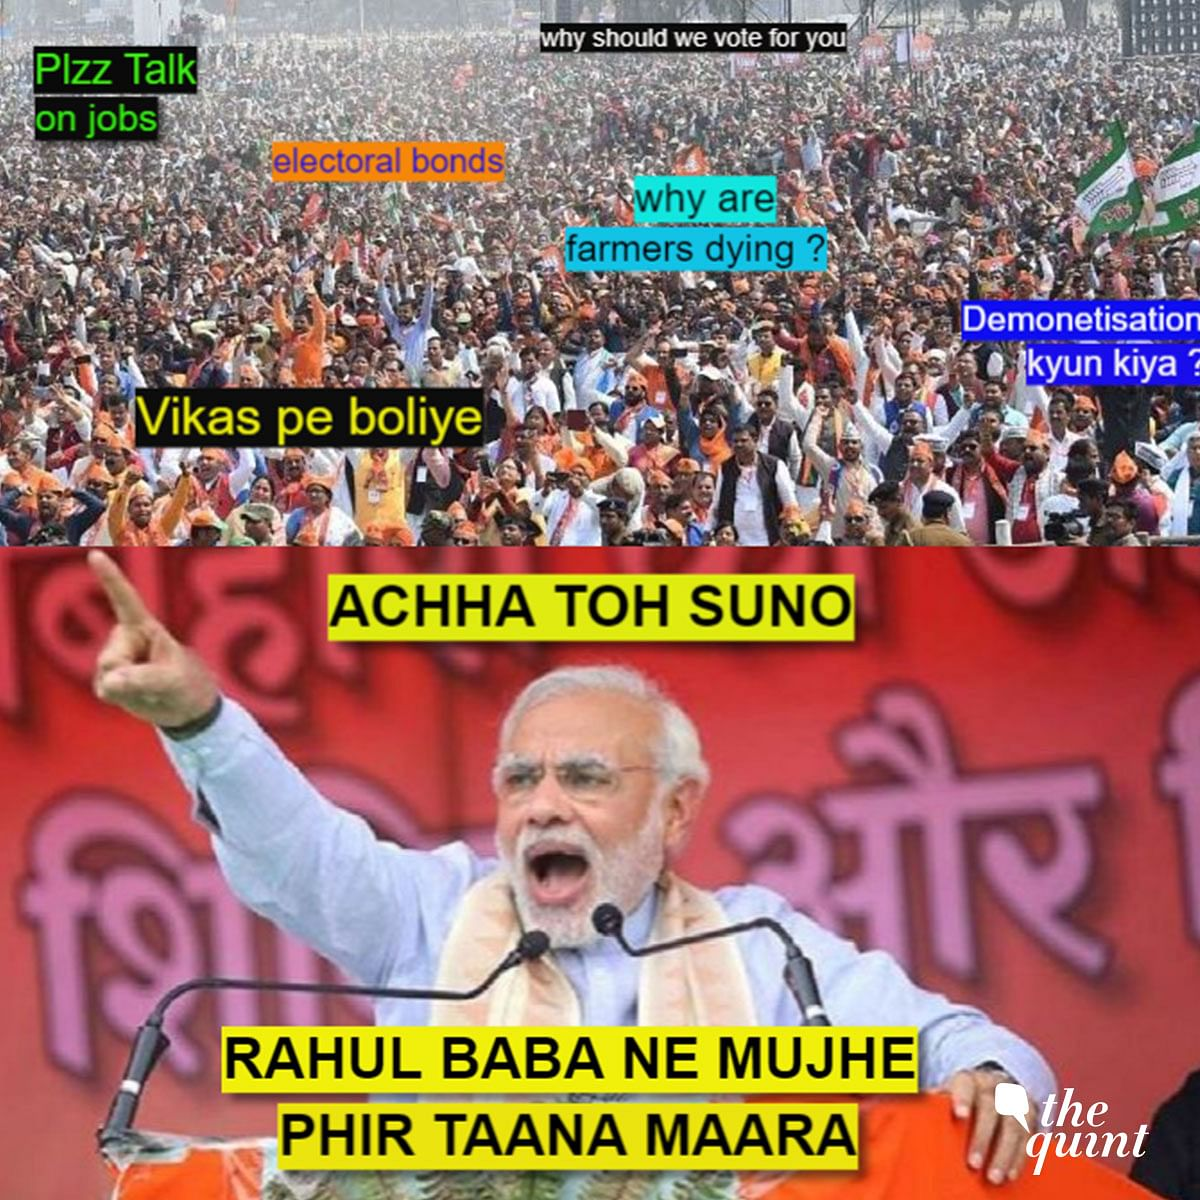 6 Election Memes That Akshay Kumar Could've Shown PM Modi Instead